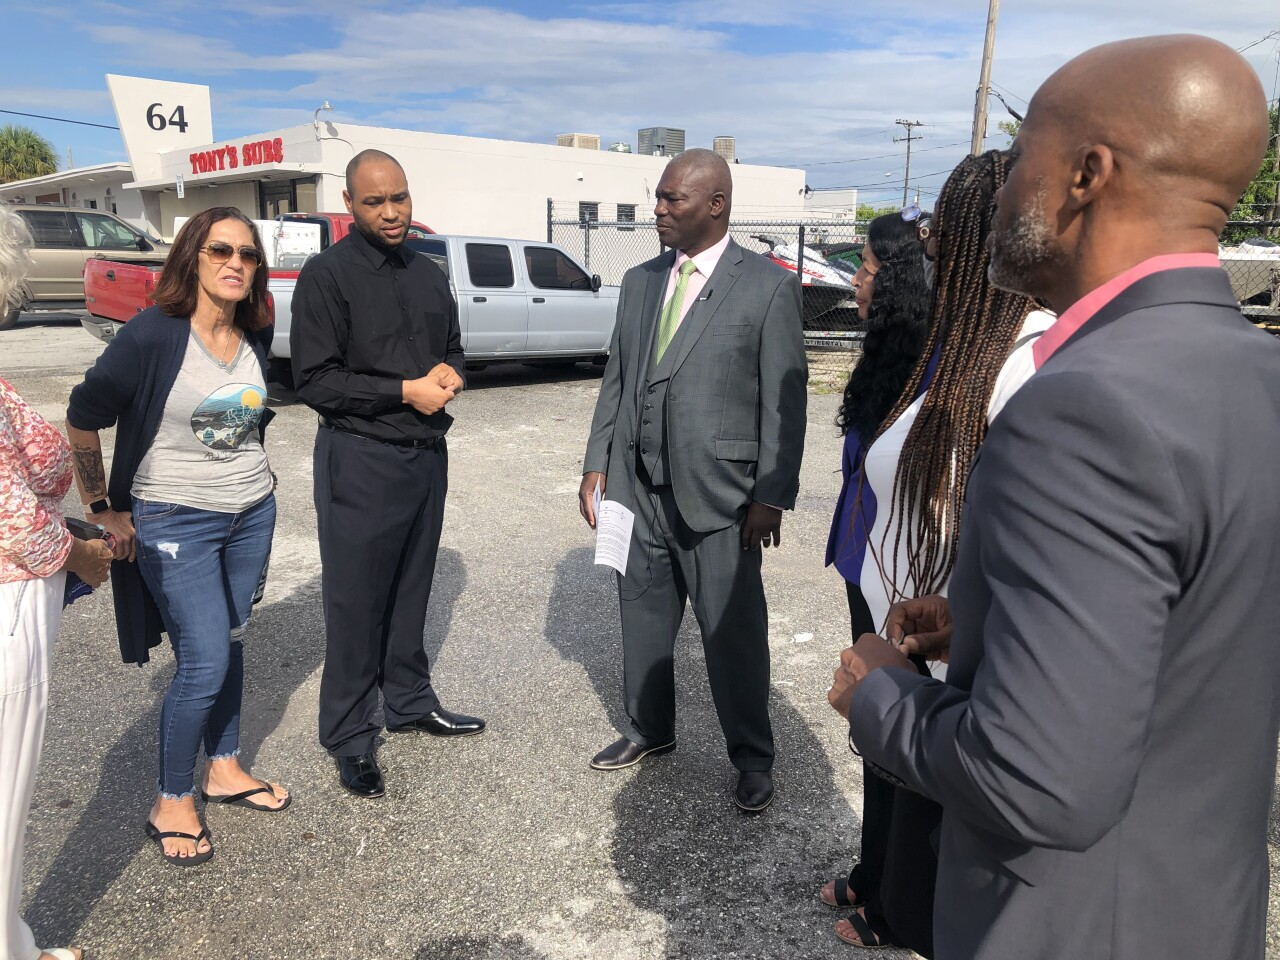 Reducing recidivism and restoring the rights of felons is being discussed both within area re-entry programs and even on some campaign trails.